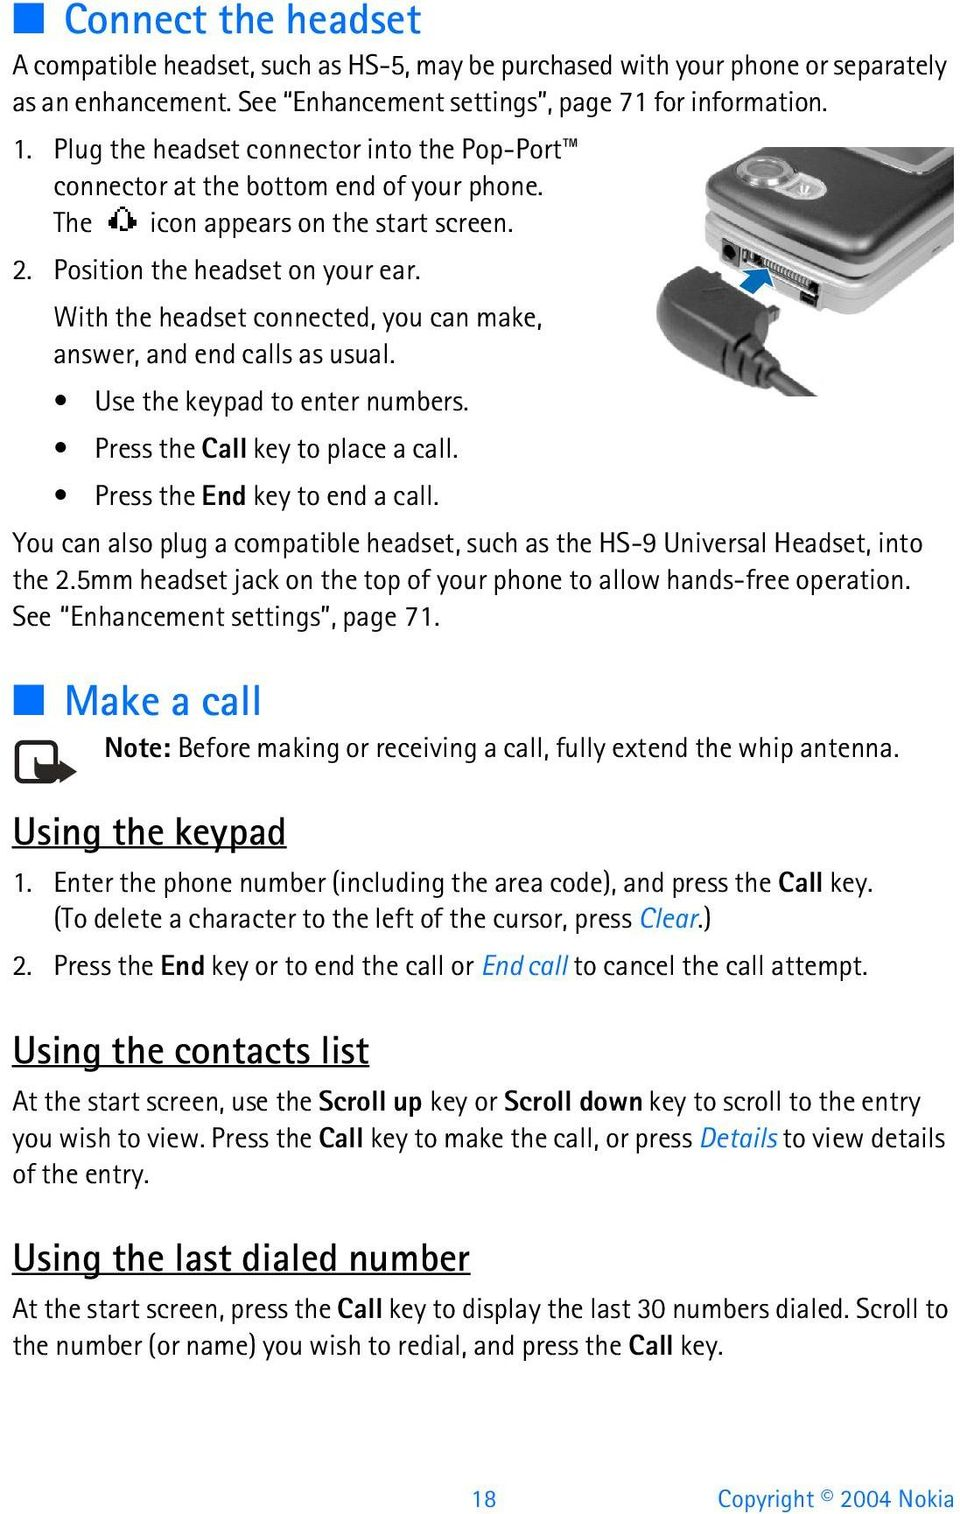 With the headset connected, you can make, answer, and end calls as usual. Use the keypad to enter numbers. Press the Call key to place a call. Press the End key to end a call.